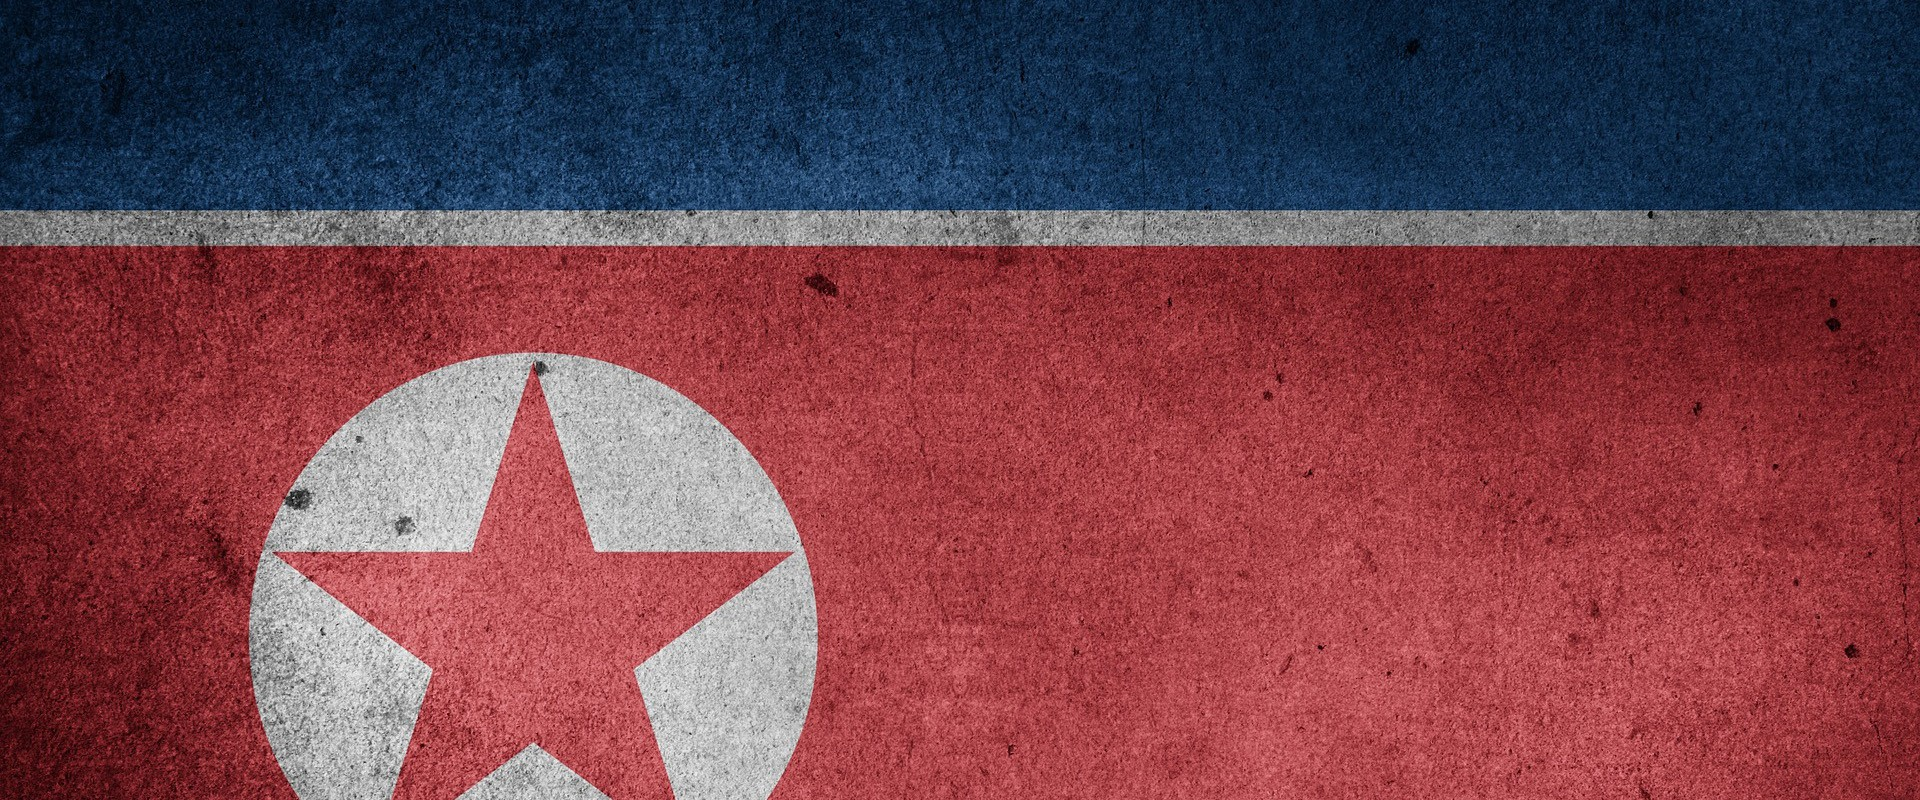 Refuga - North Korea